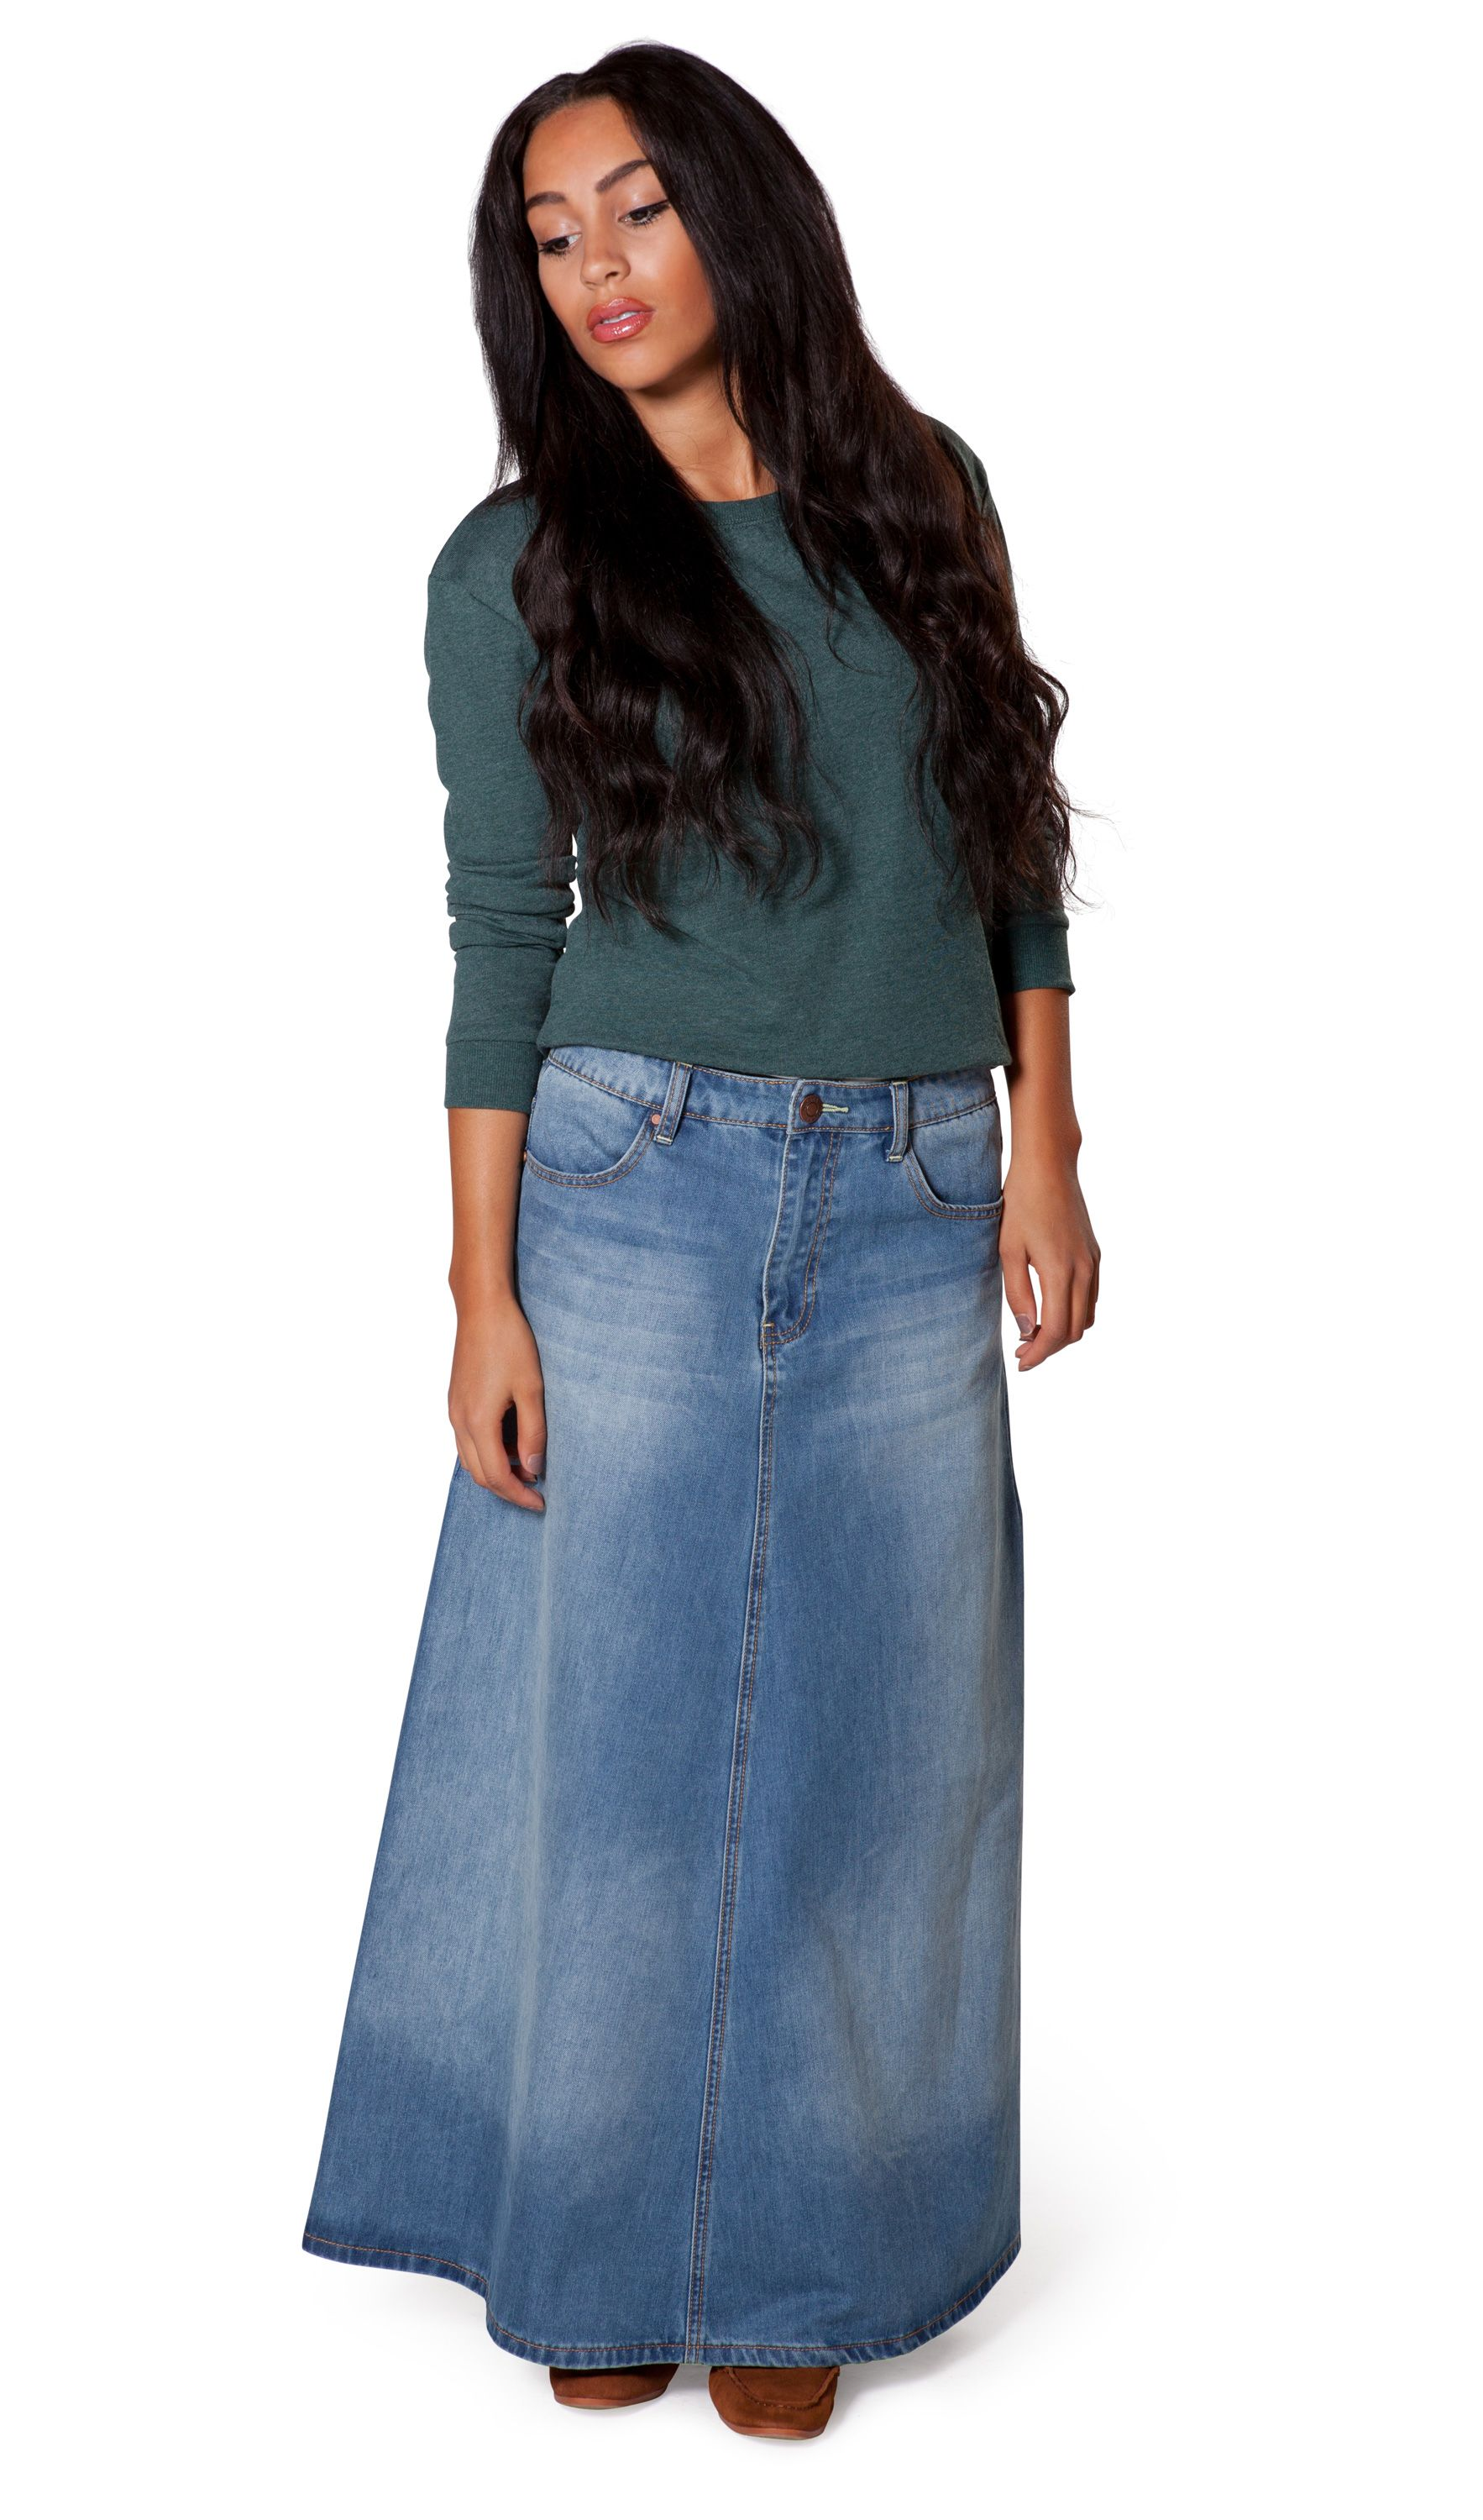 0f0982f97c Attractive & modest A-Line long denim skirt from Uskees. Fashionable medium  weight faded denim maxi skirt. #longdenimskirts #uskees #modestfashion